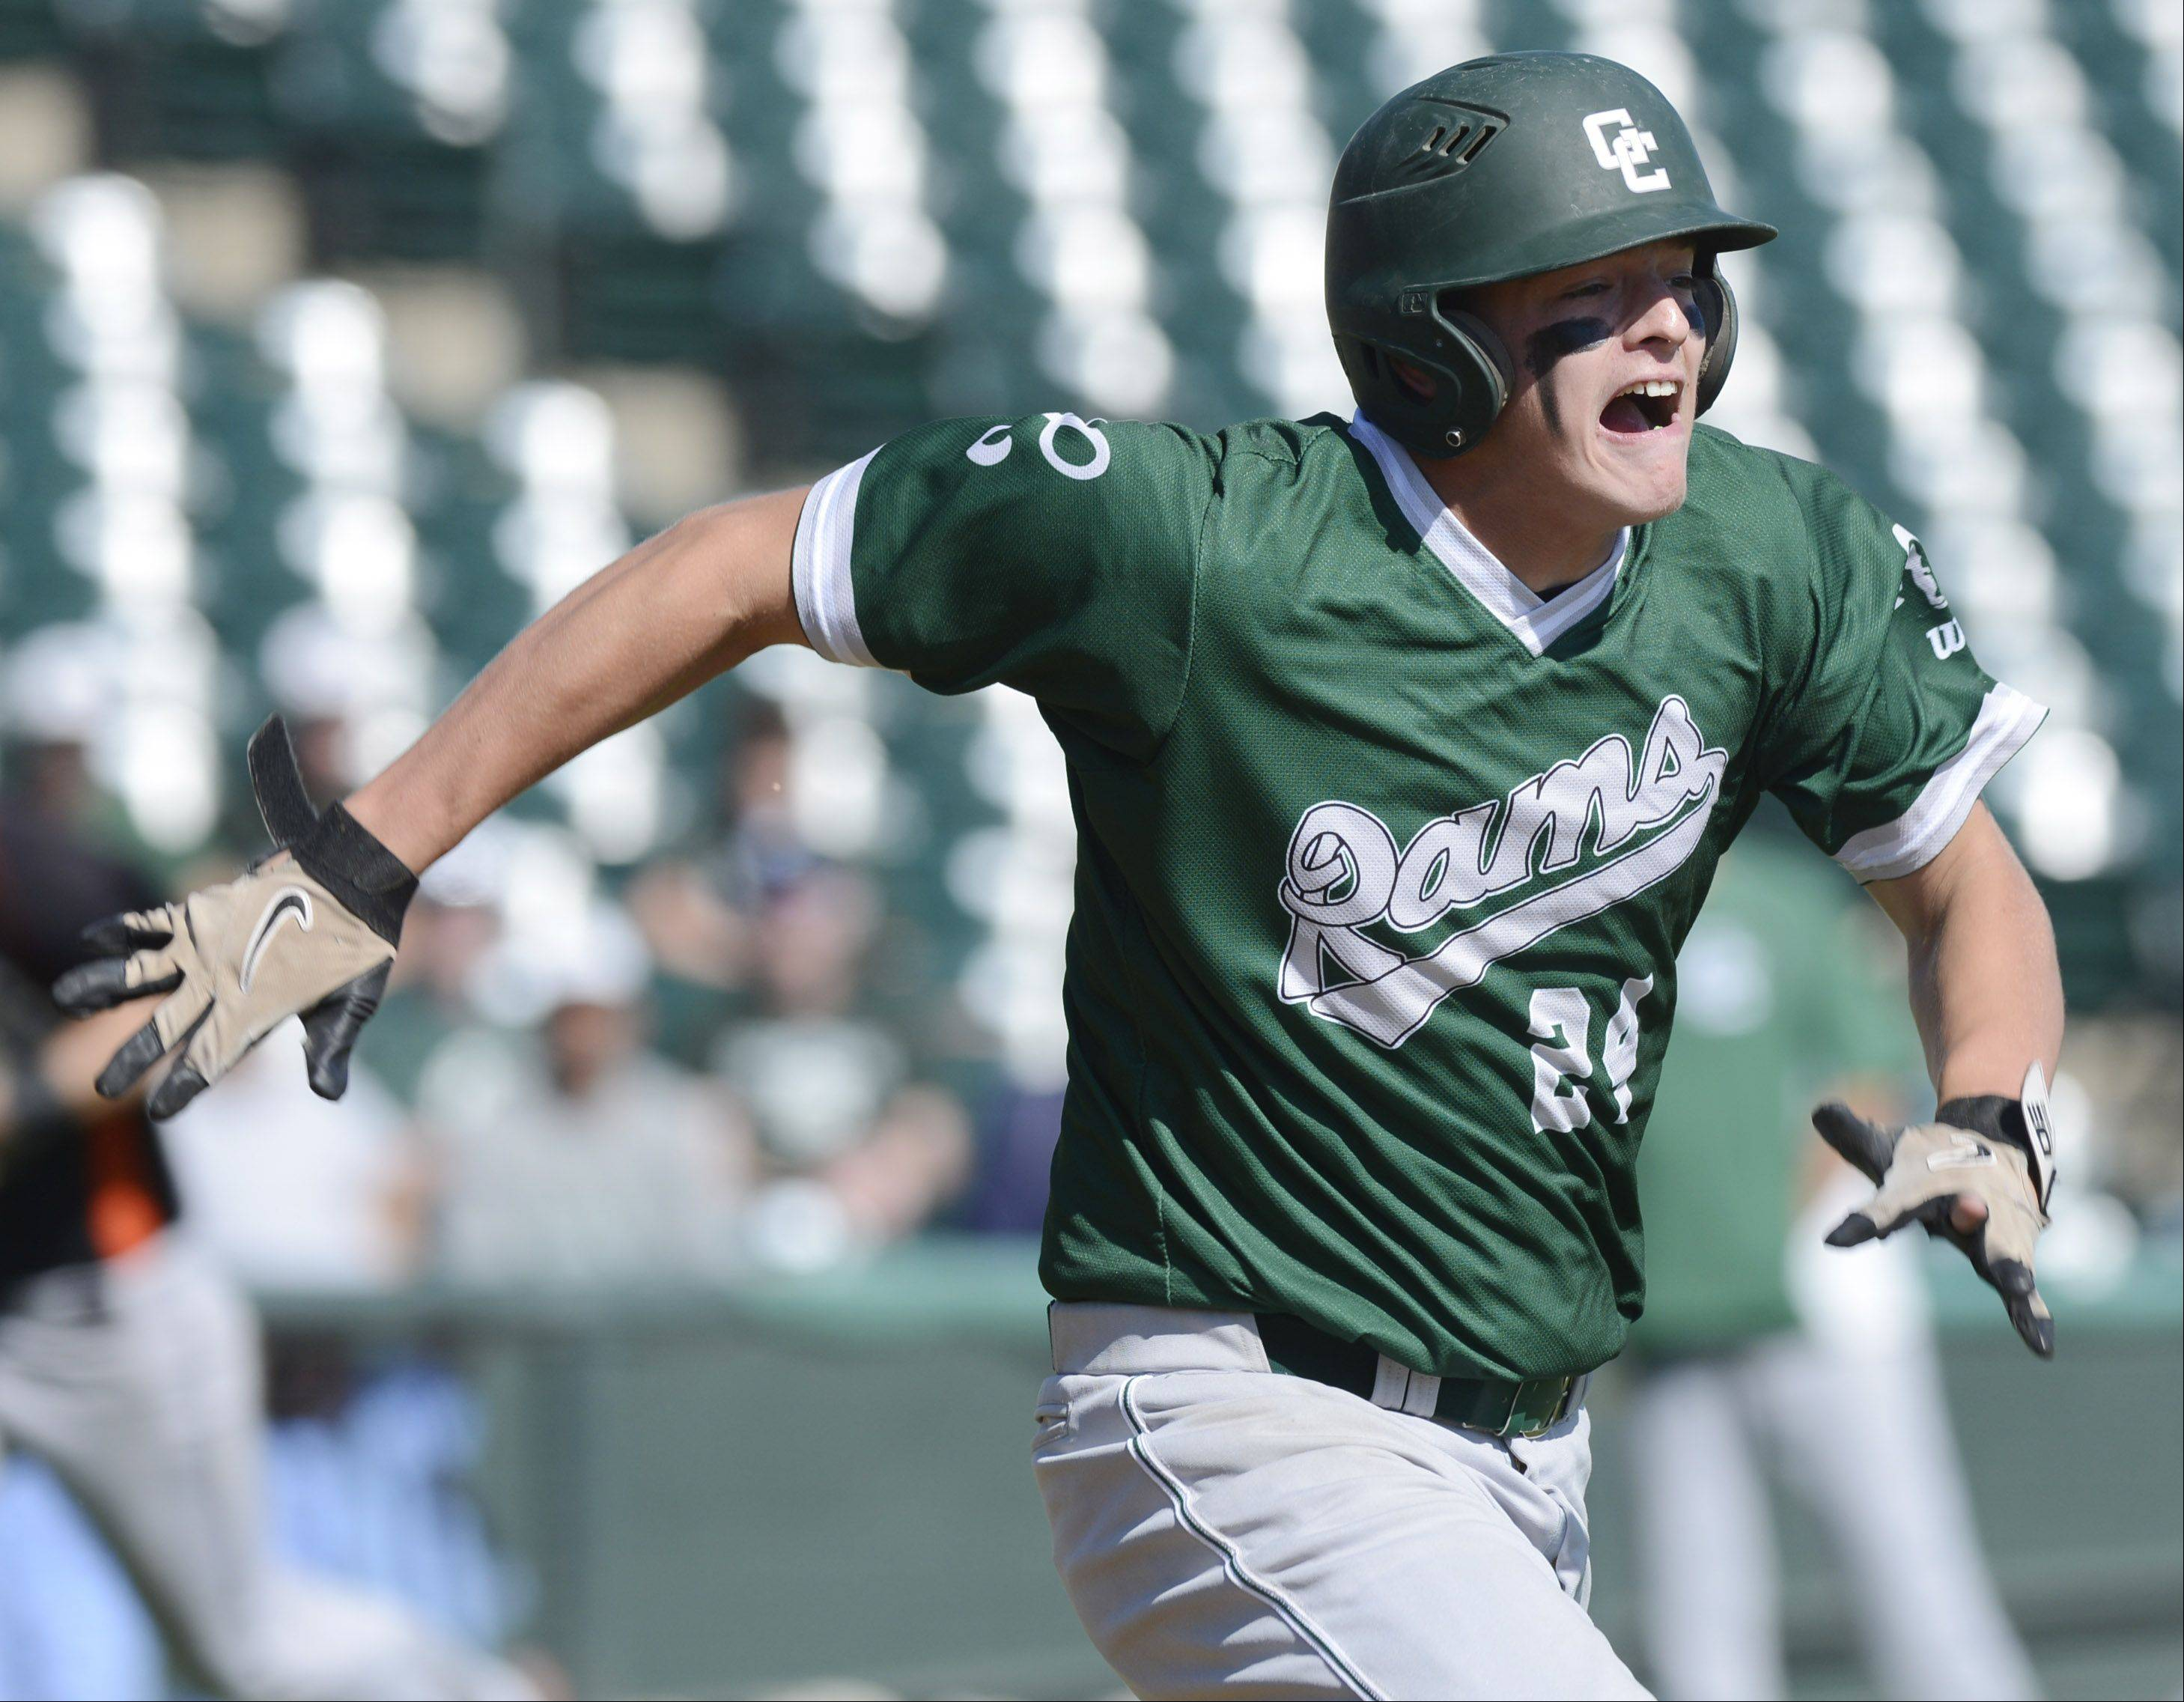 Grayslake Central's Kyle Clark hustles to the base on an infield groundout during the Class 3A state baseball third-place game at Silver Cross Field in Joliet Saturday.